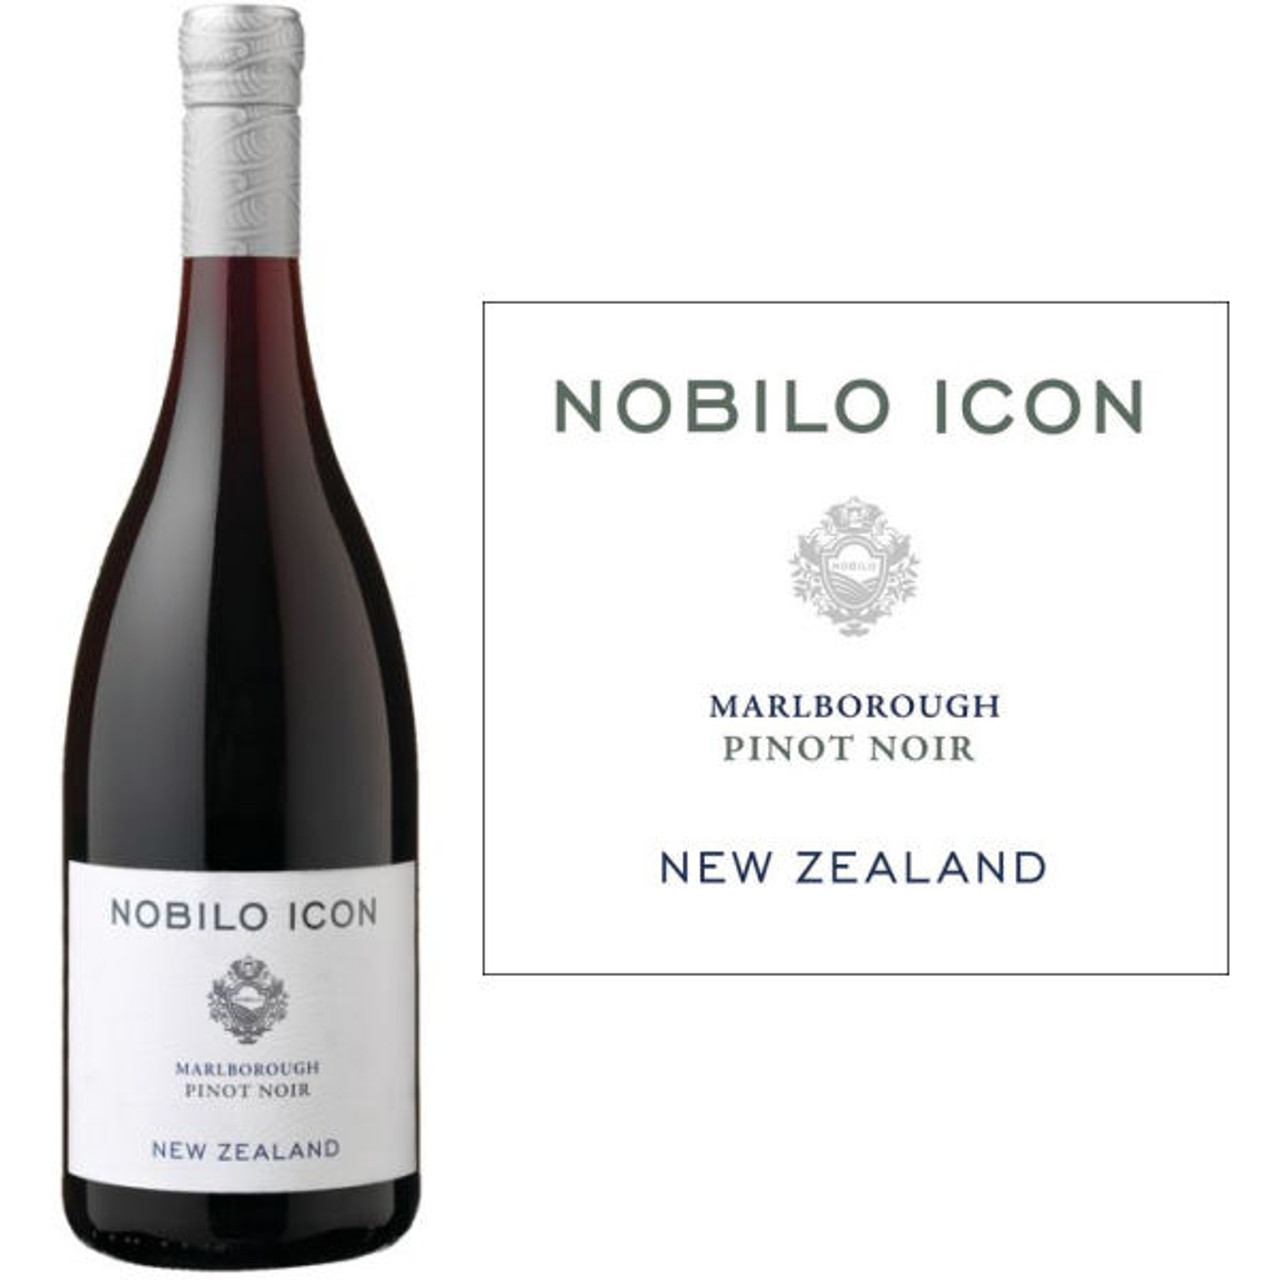 Nobilo Icon Marlborough Pinot Noir